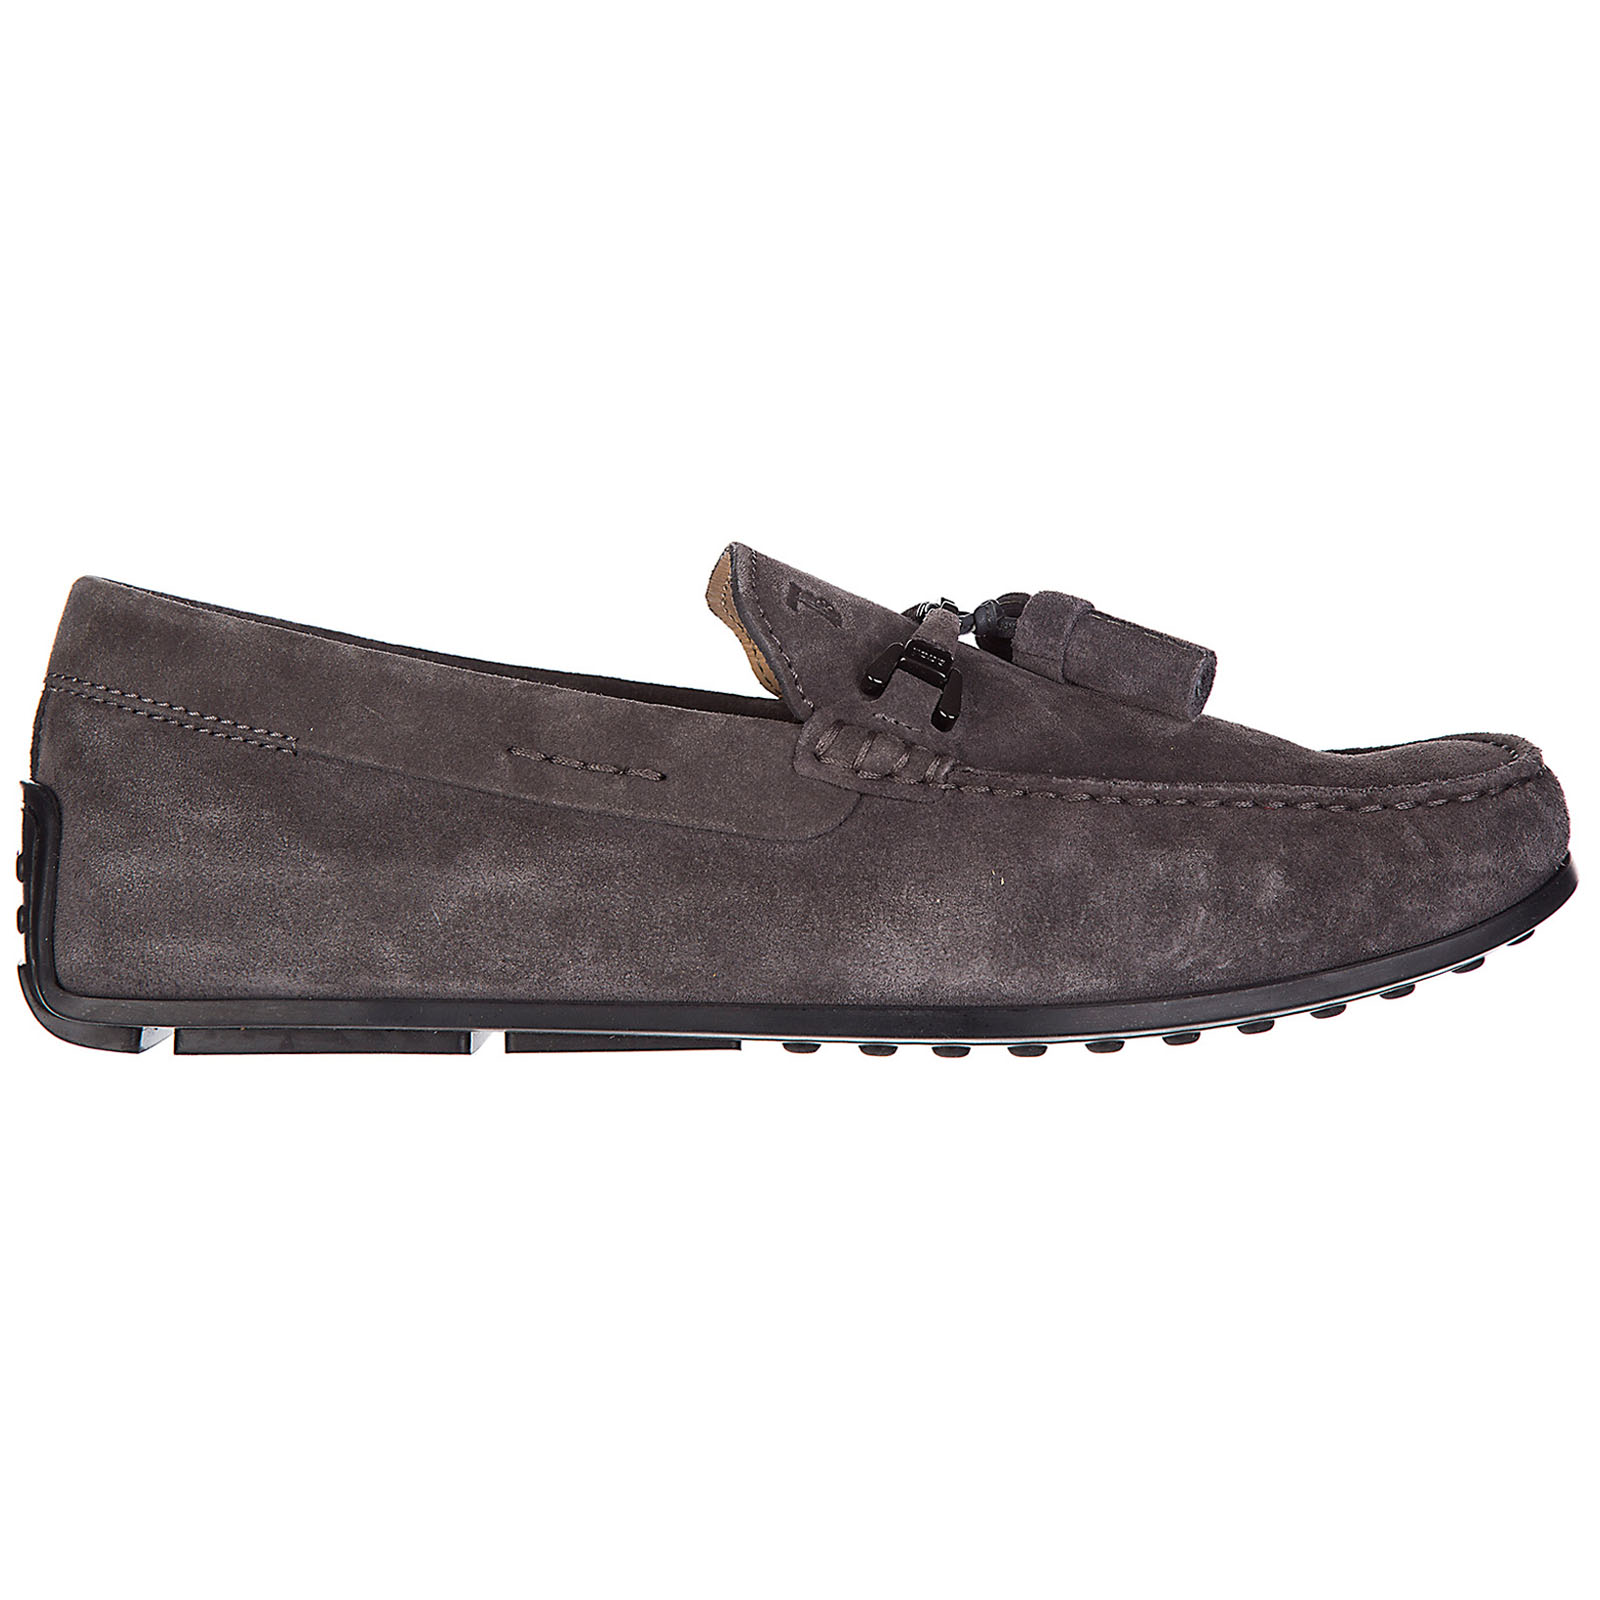 Men's suede loafers moccasins double t nappine